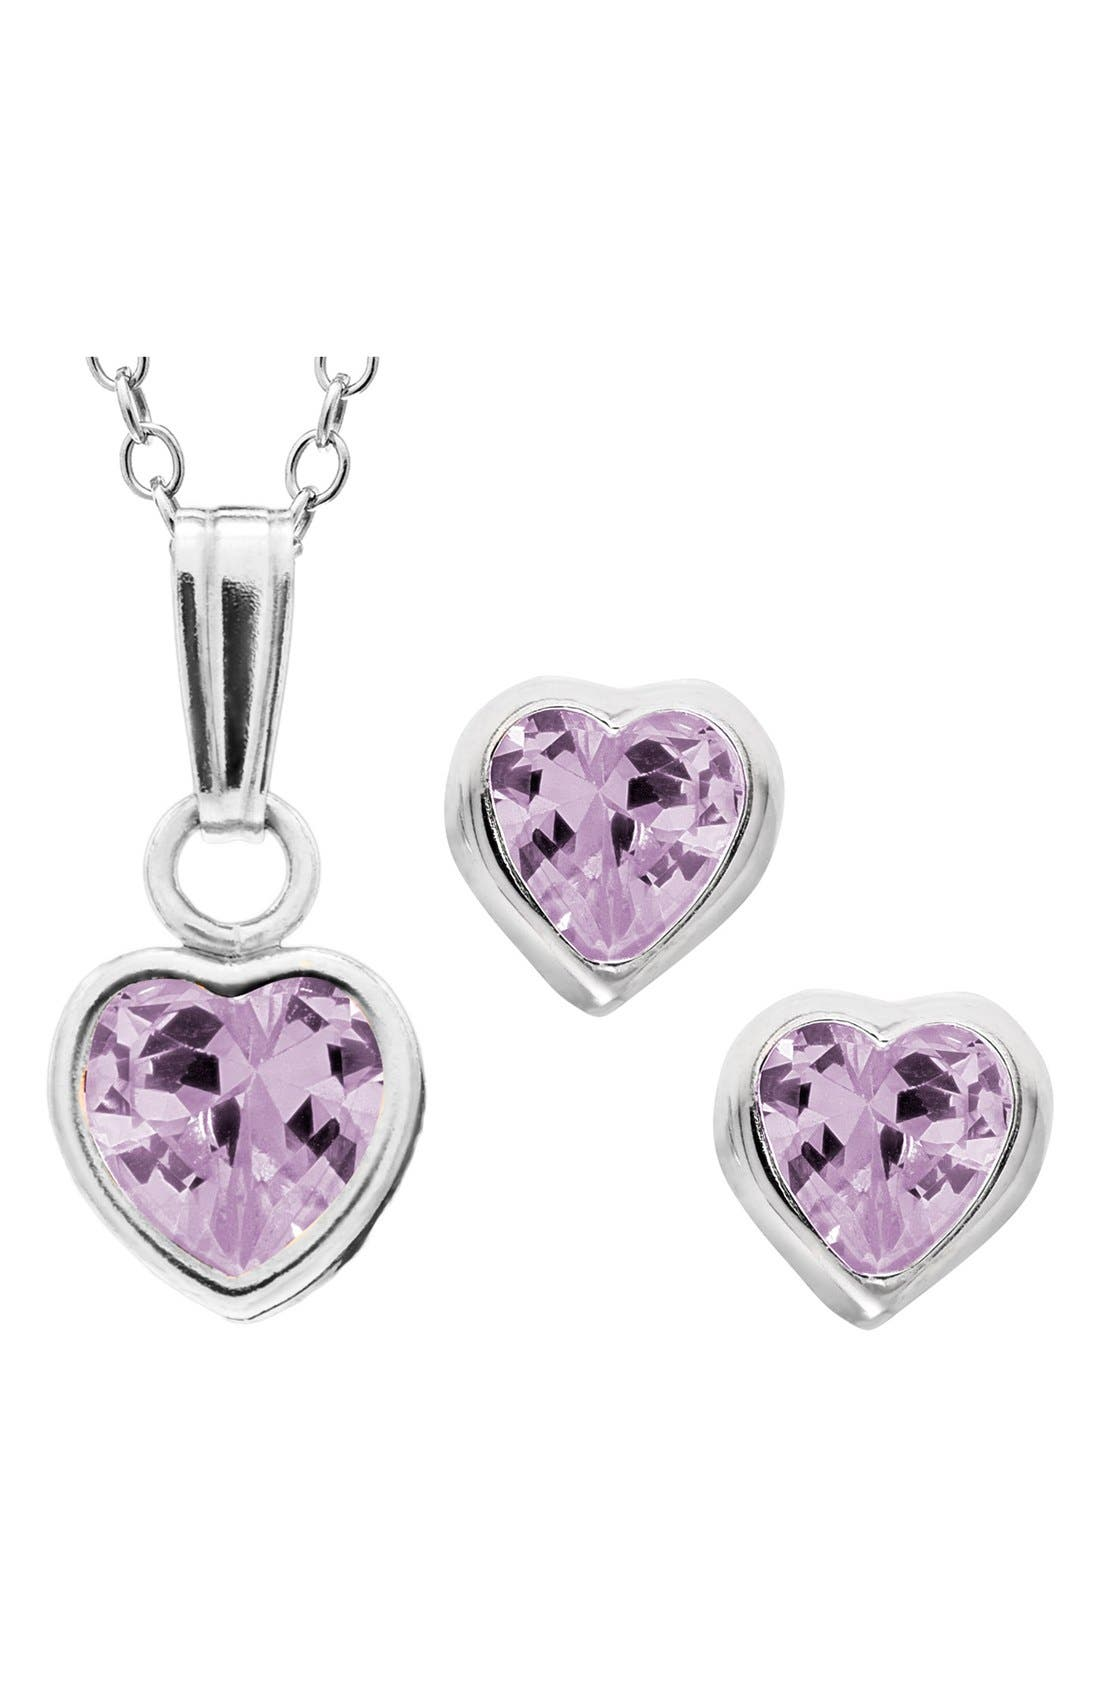 Alternate Image 1 Selected - Mignonette Sterling Silver & Cubic Zirconia Birthstone Necklace & Earrings Set (Girls)